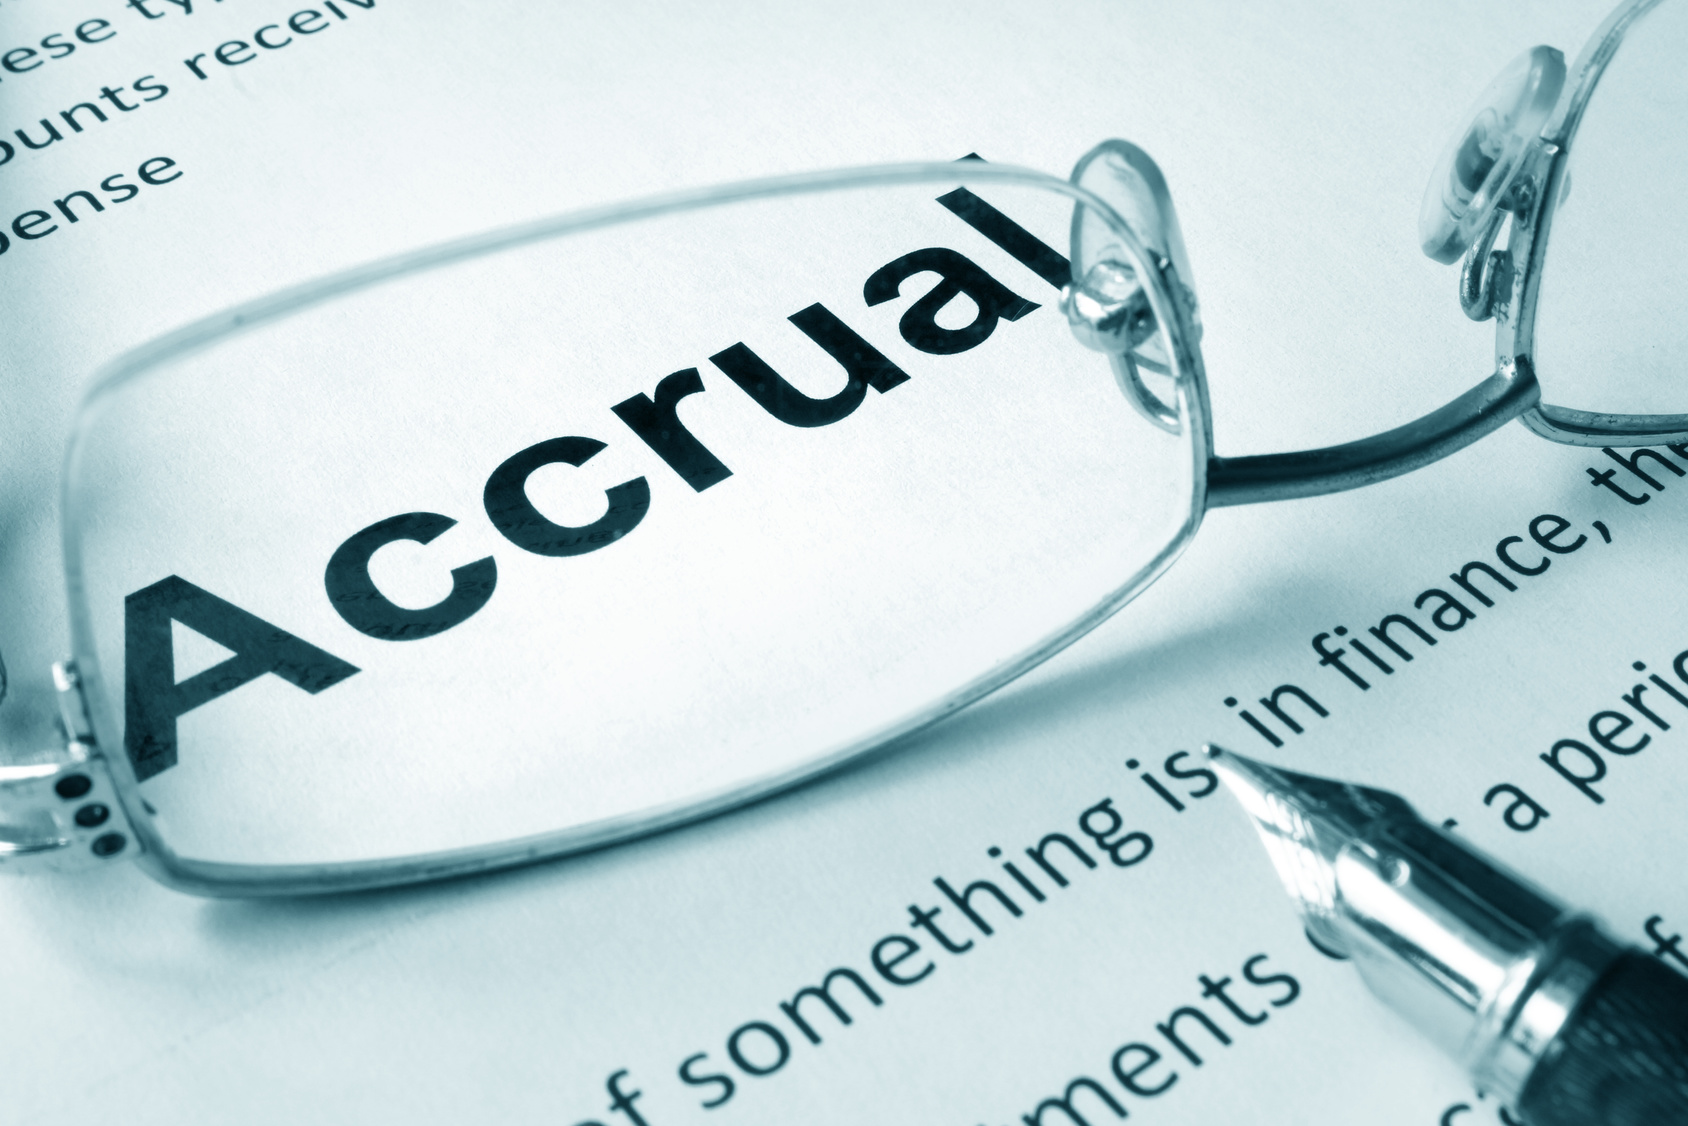 accrual accounting Accrual accounting a system of accounting that recognizes revenue and matches it with the expenses that generated that revenue unlike other systems of accounting.